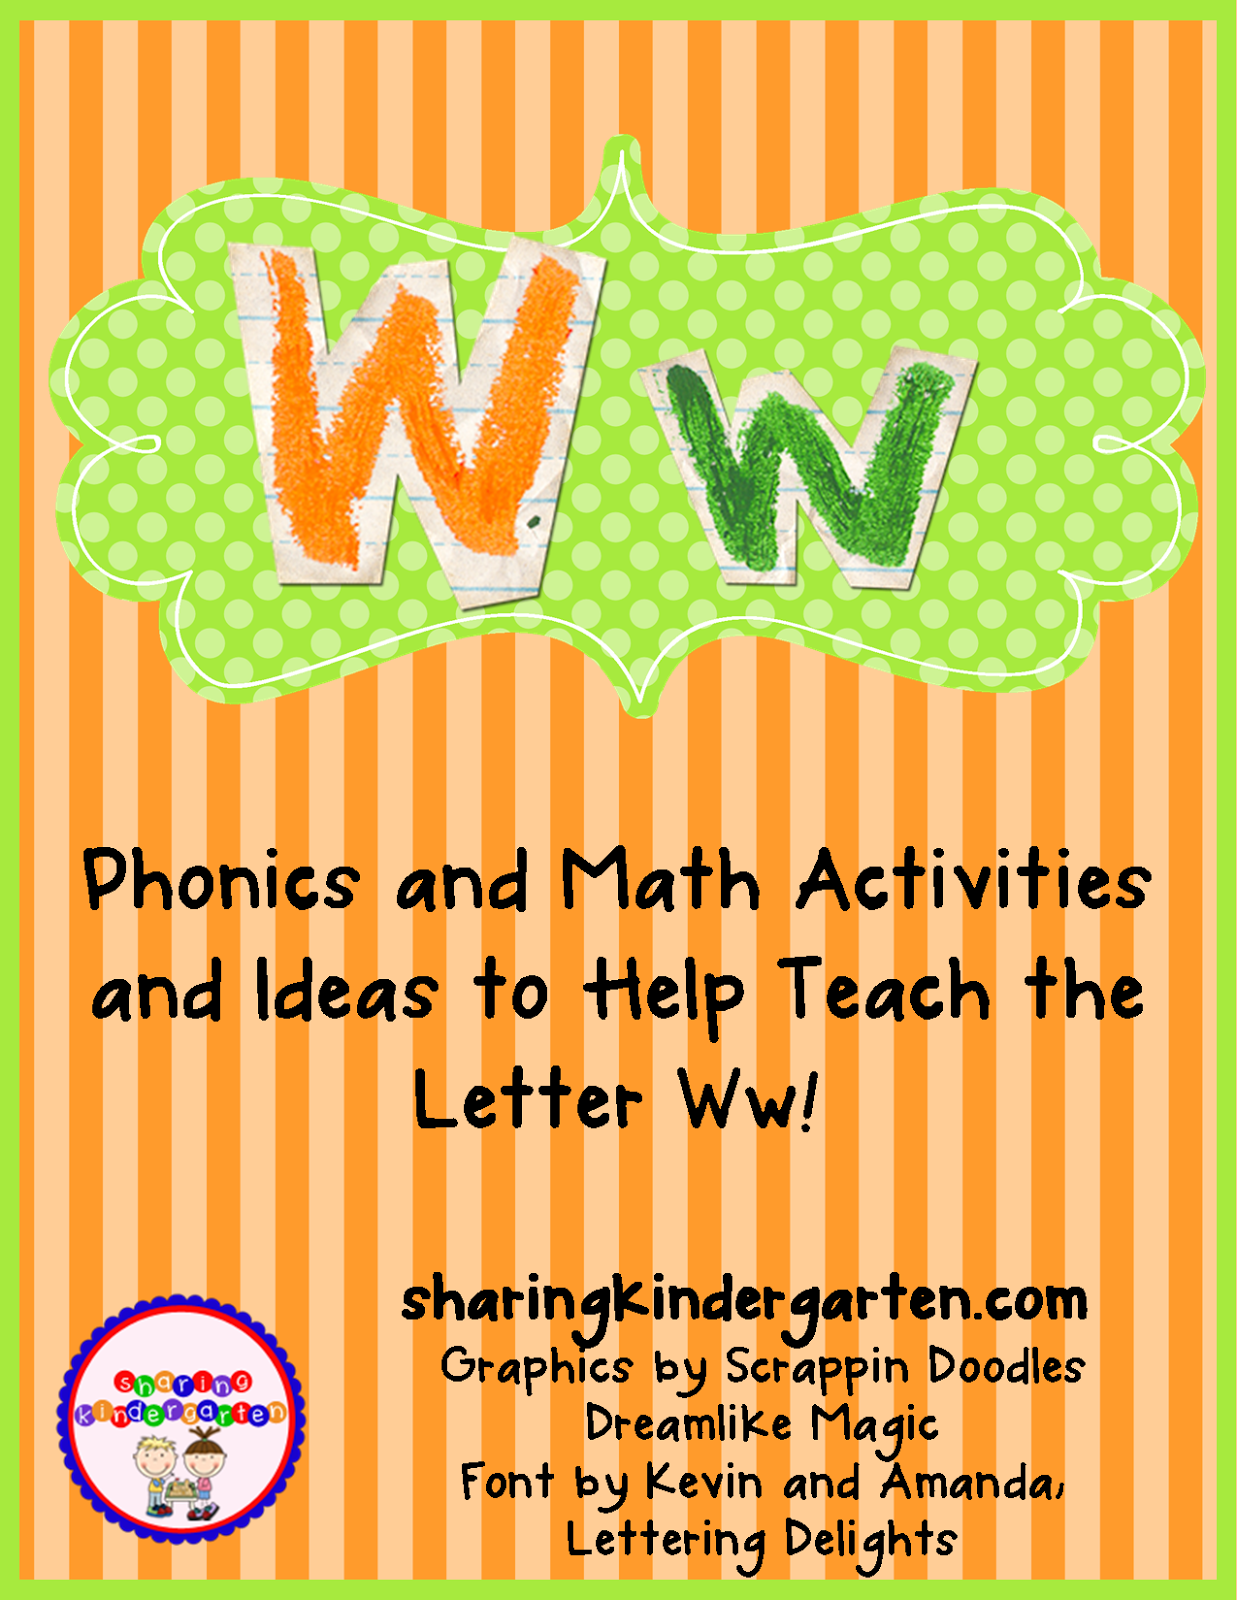 http://www.teacherspayteachers.com/Product/Ww-Activities-771706